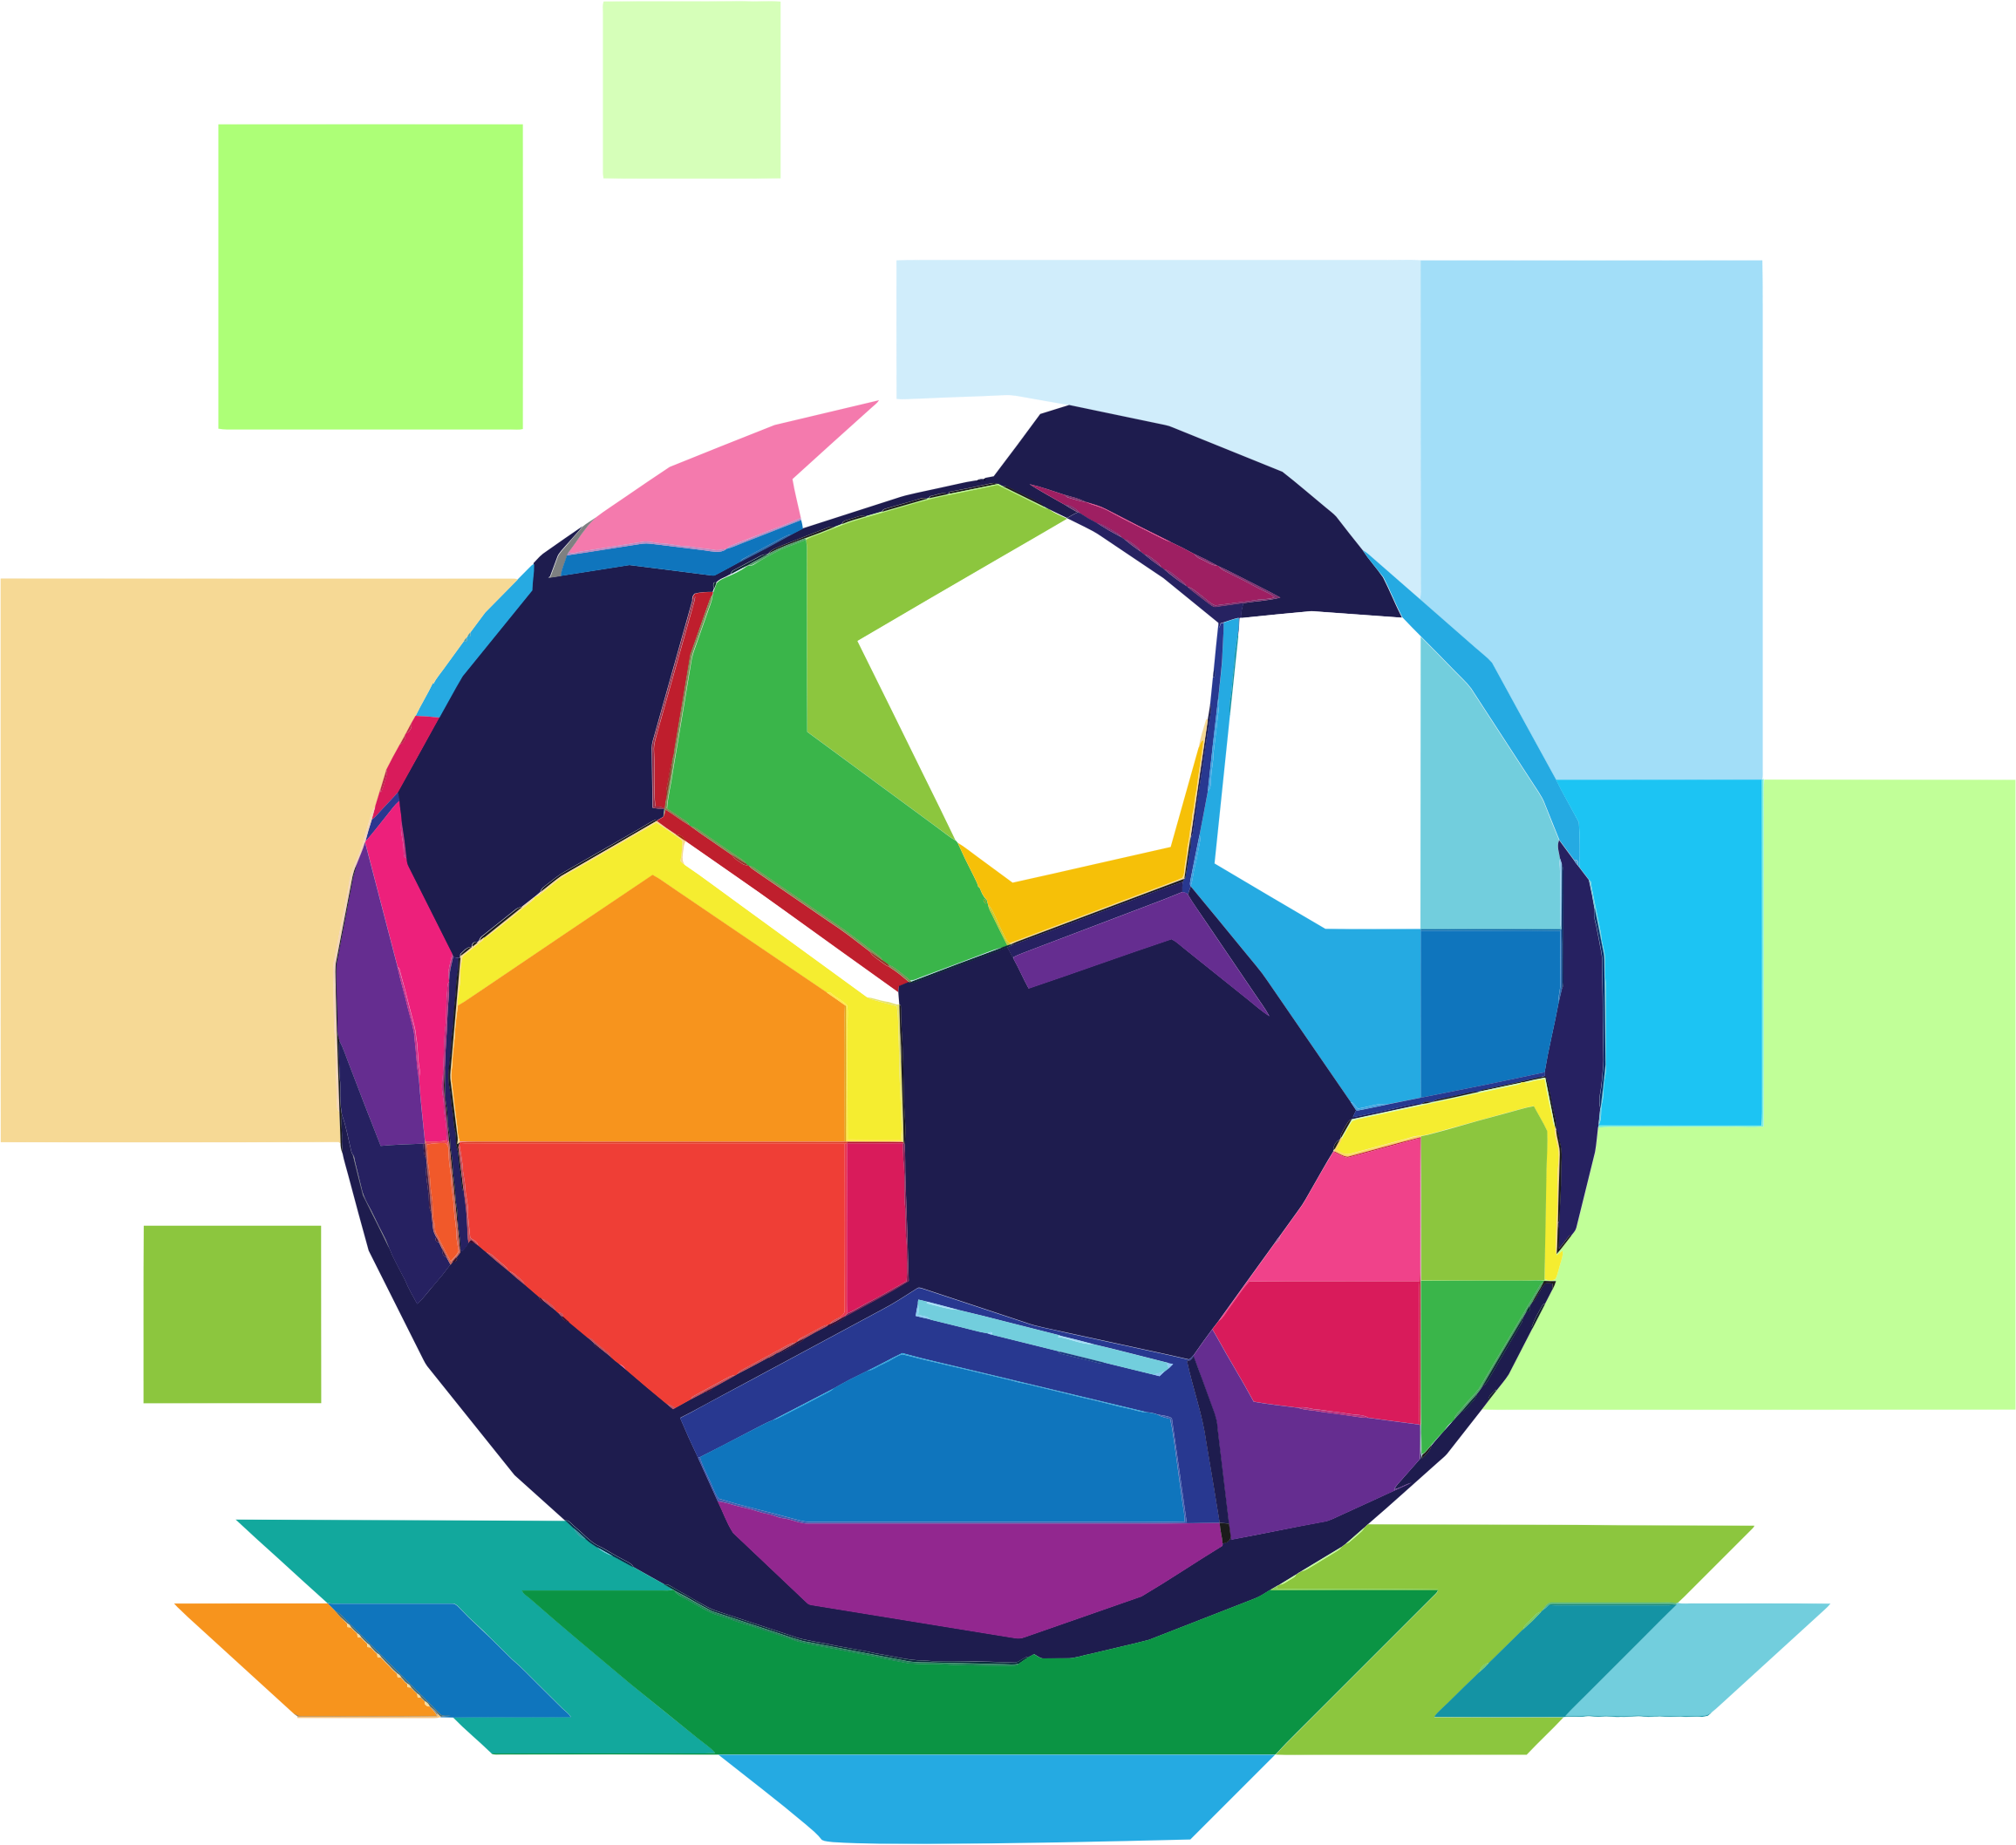 Geometric Football (Soccer) by GDJ